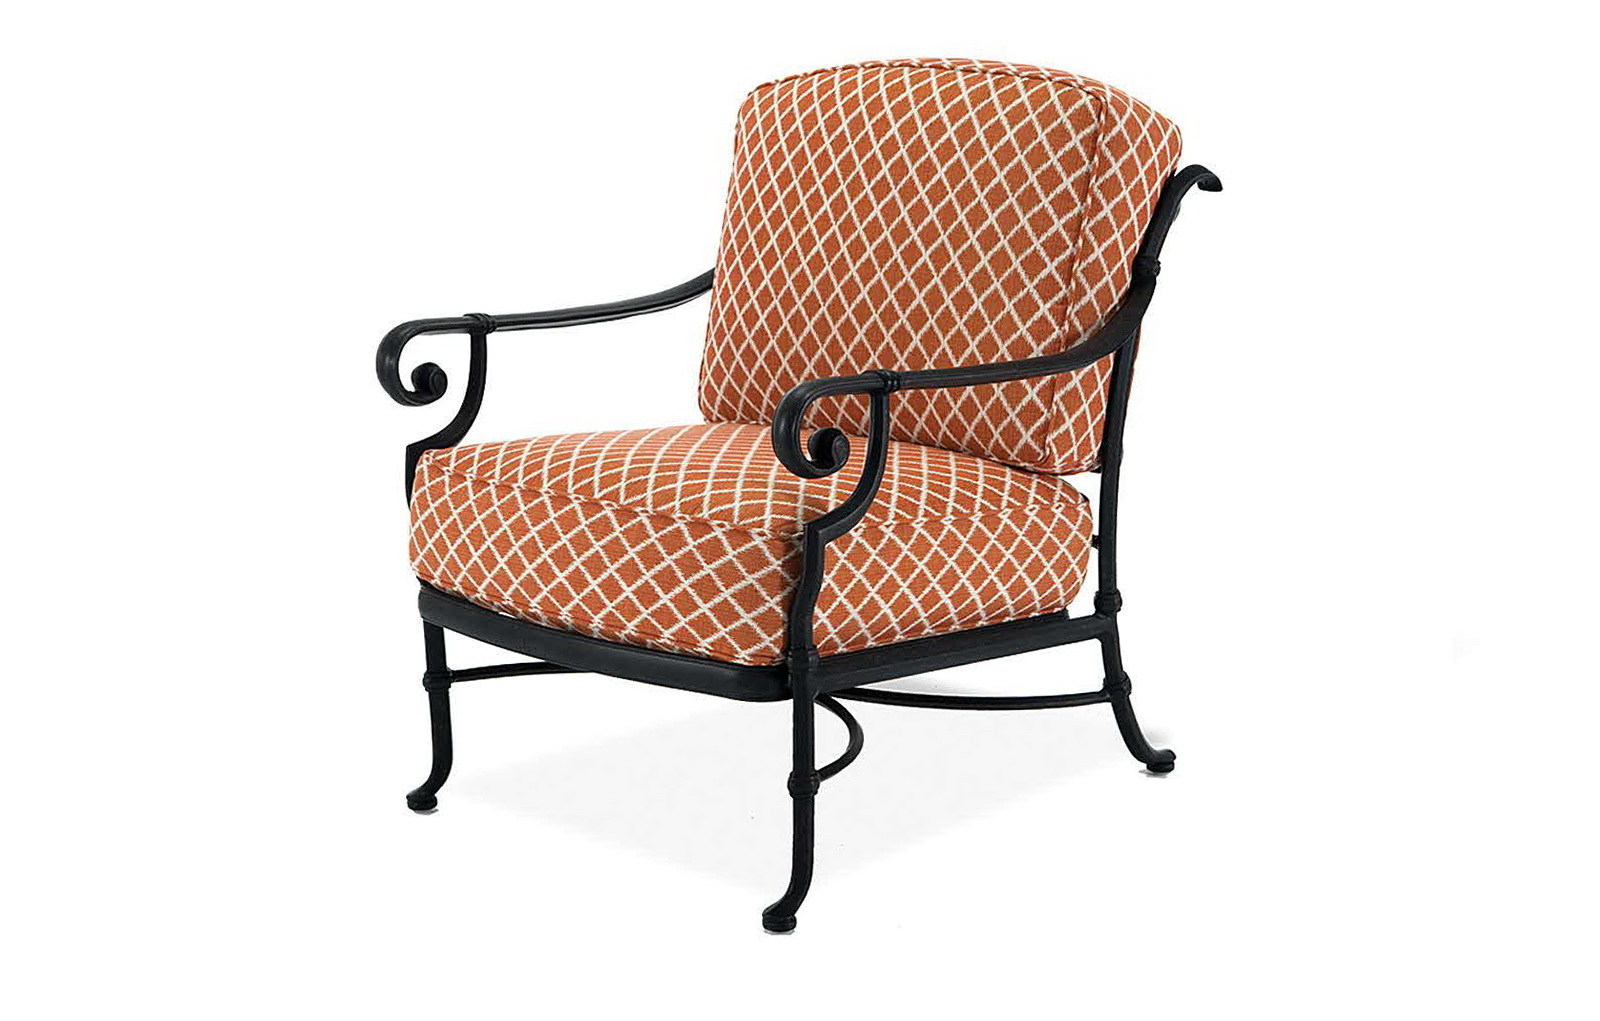 Deep Seat Cushions For Outdoor Furniture  Home Design Ideas